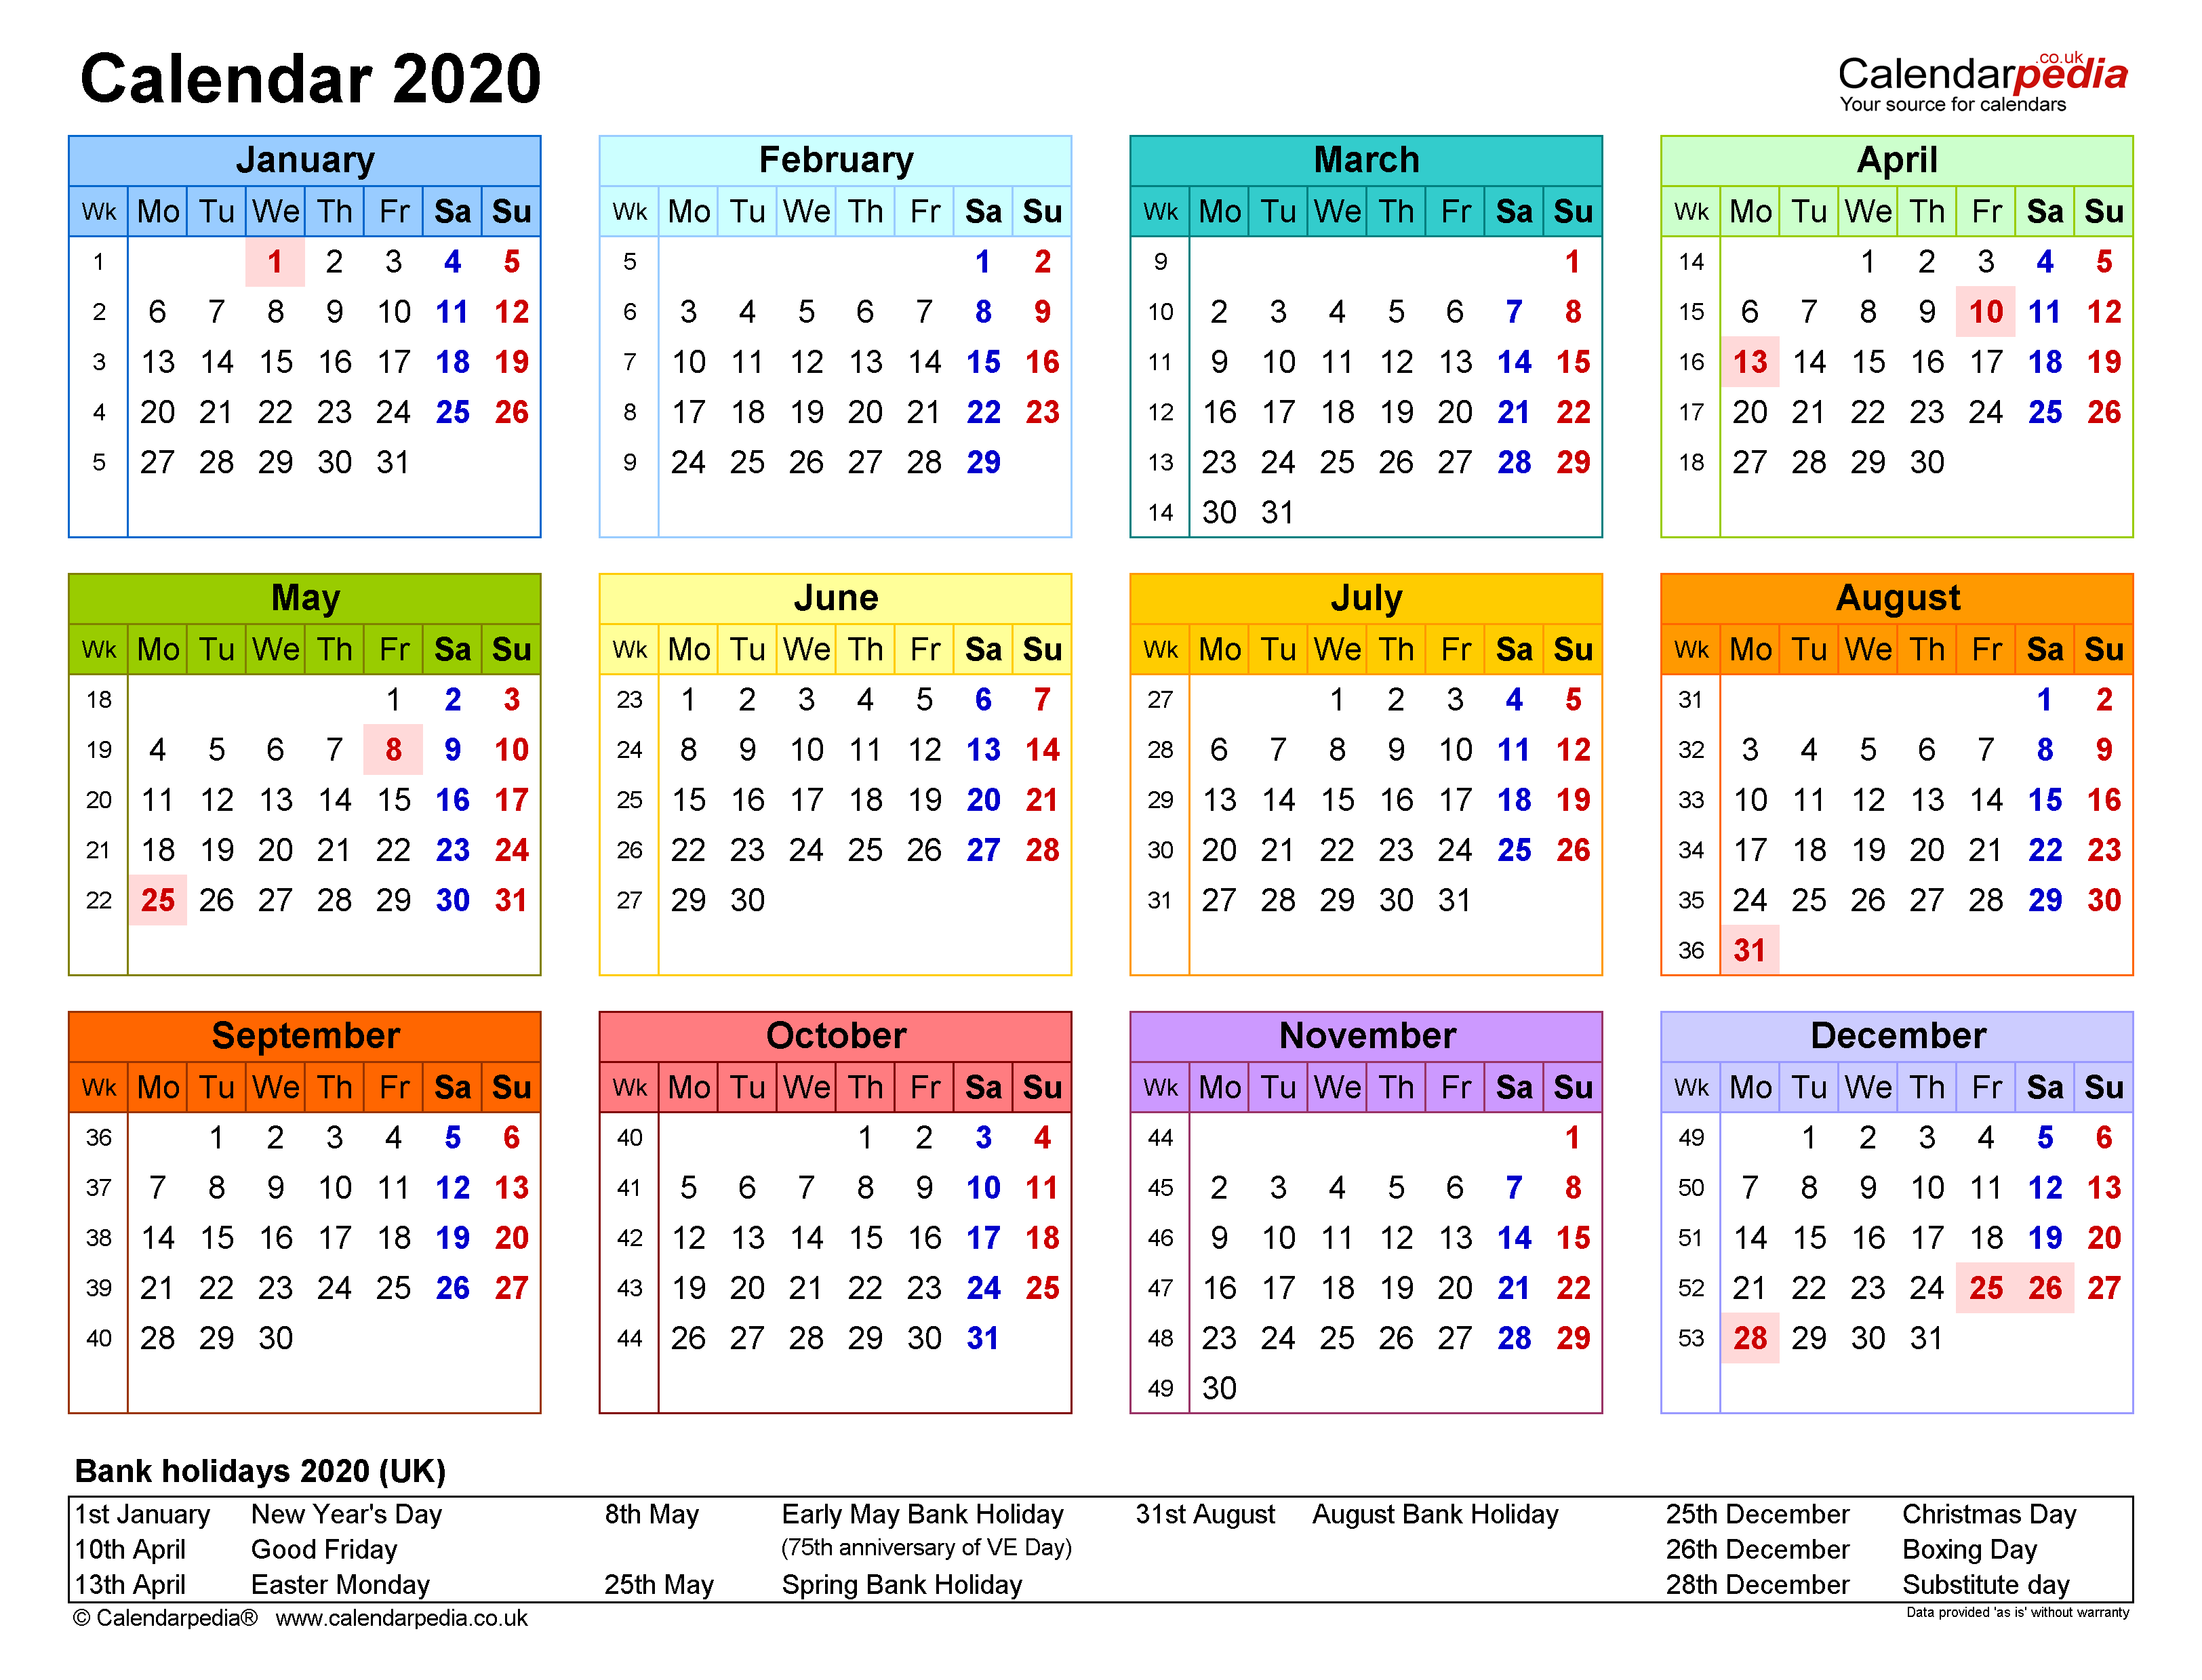 Calendar 2020 (Uk) | 17 Free Printable Word Templates Intended For Where To Find Google Printable Amendable Calander